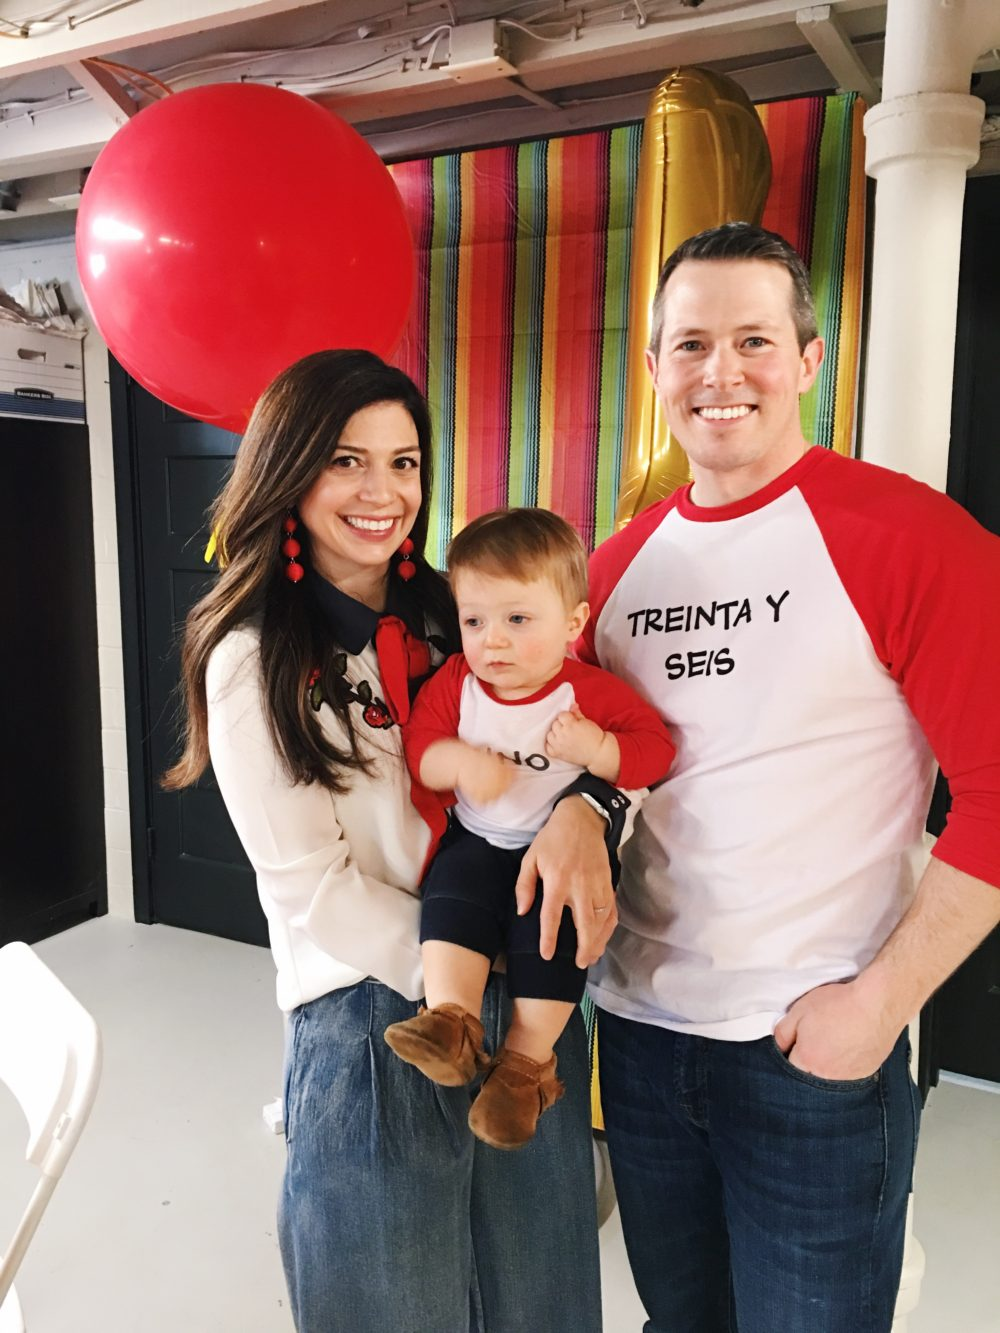 Fiesta Birthday Party by popular Michigan lifestyle blog, The HSS FEED: image of a mom and dad holding their 1 year old son together.